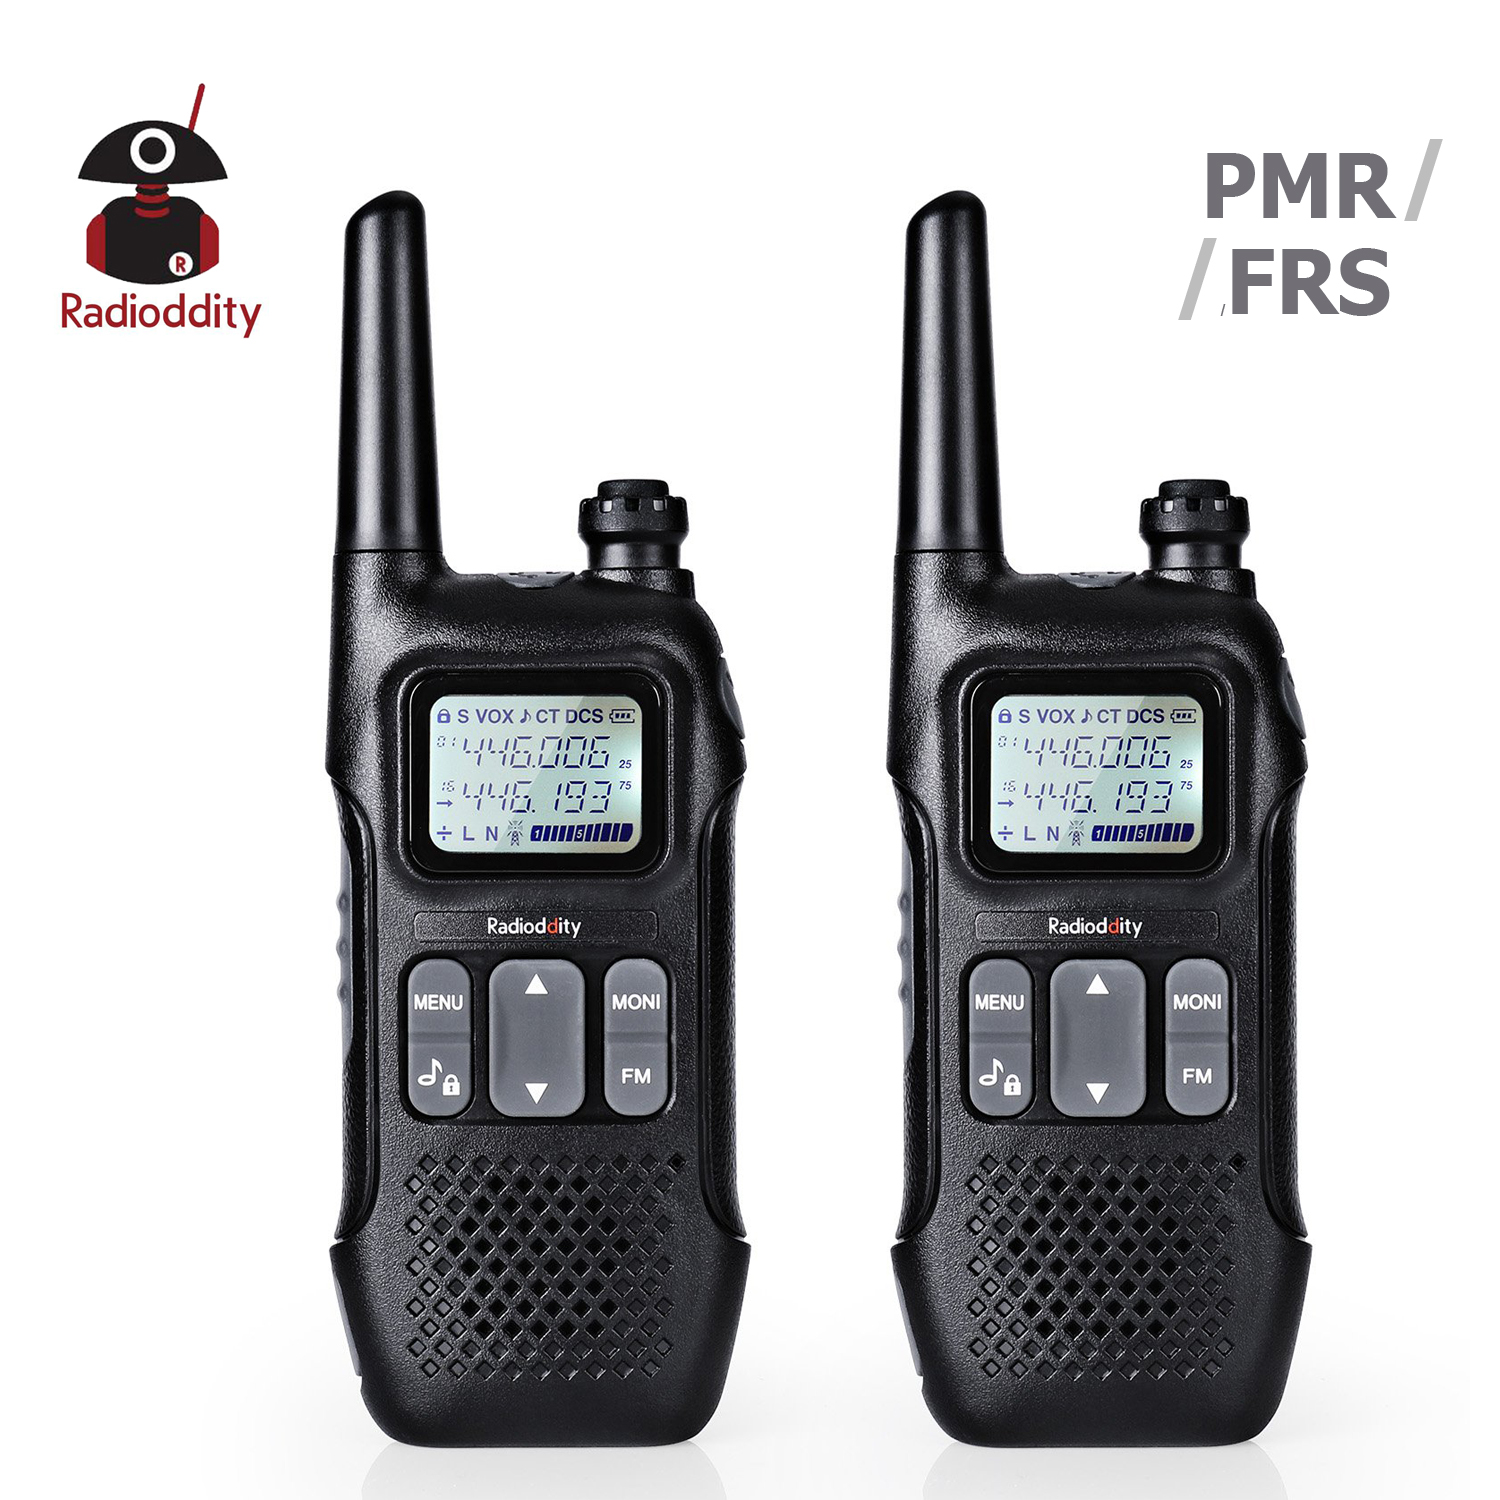 Radioddity Radio-License-Free Walkie Talkies Two-Way PMR 2pcs PR-T1 FRS 2W NO with NOAA